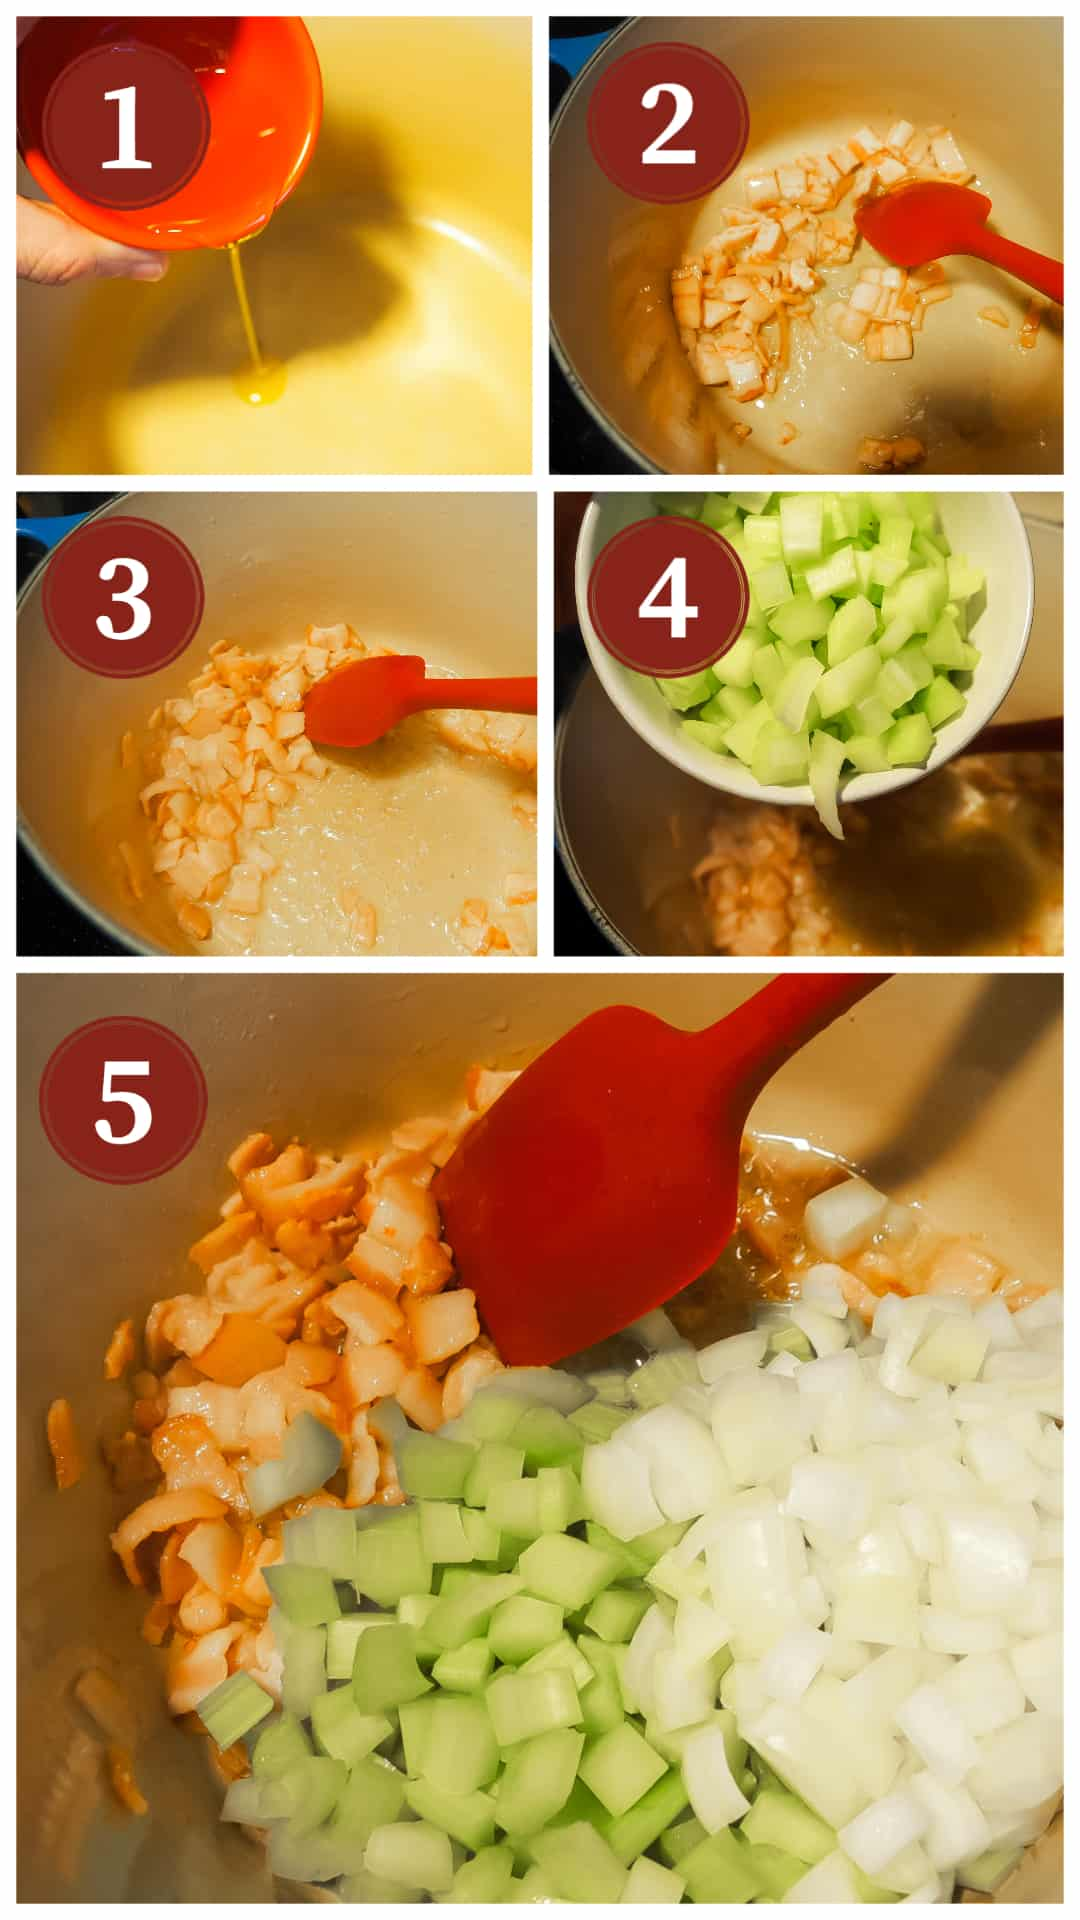 Images of the process of making pasta e fagioli, steps 1 - 5.